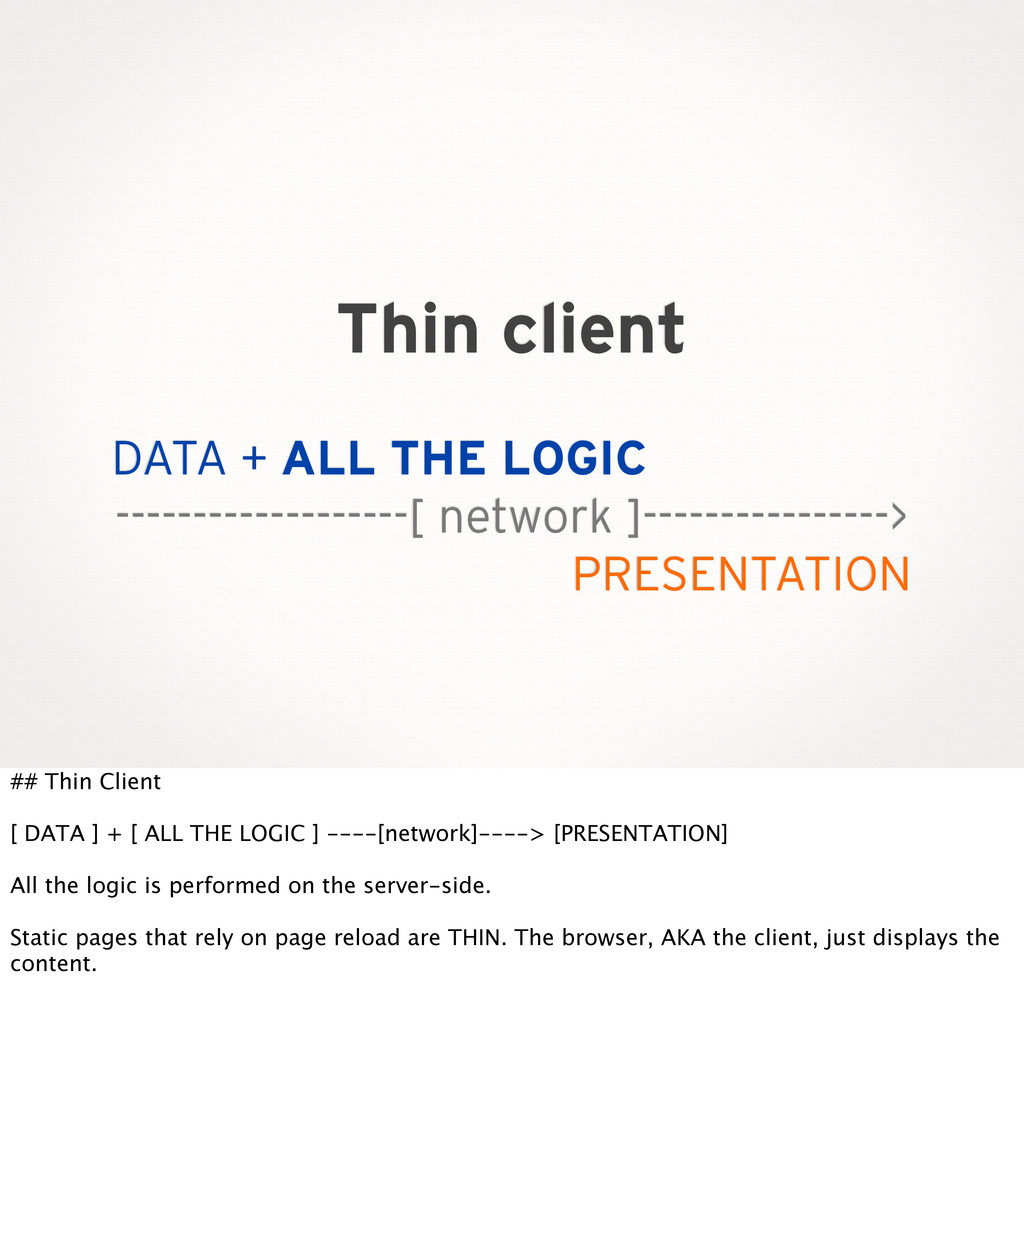 Thin client DATA + ALL THE LOGIC --------------...